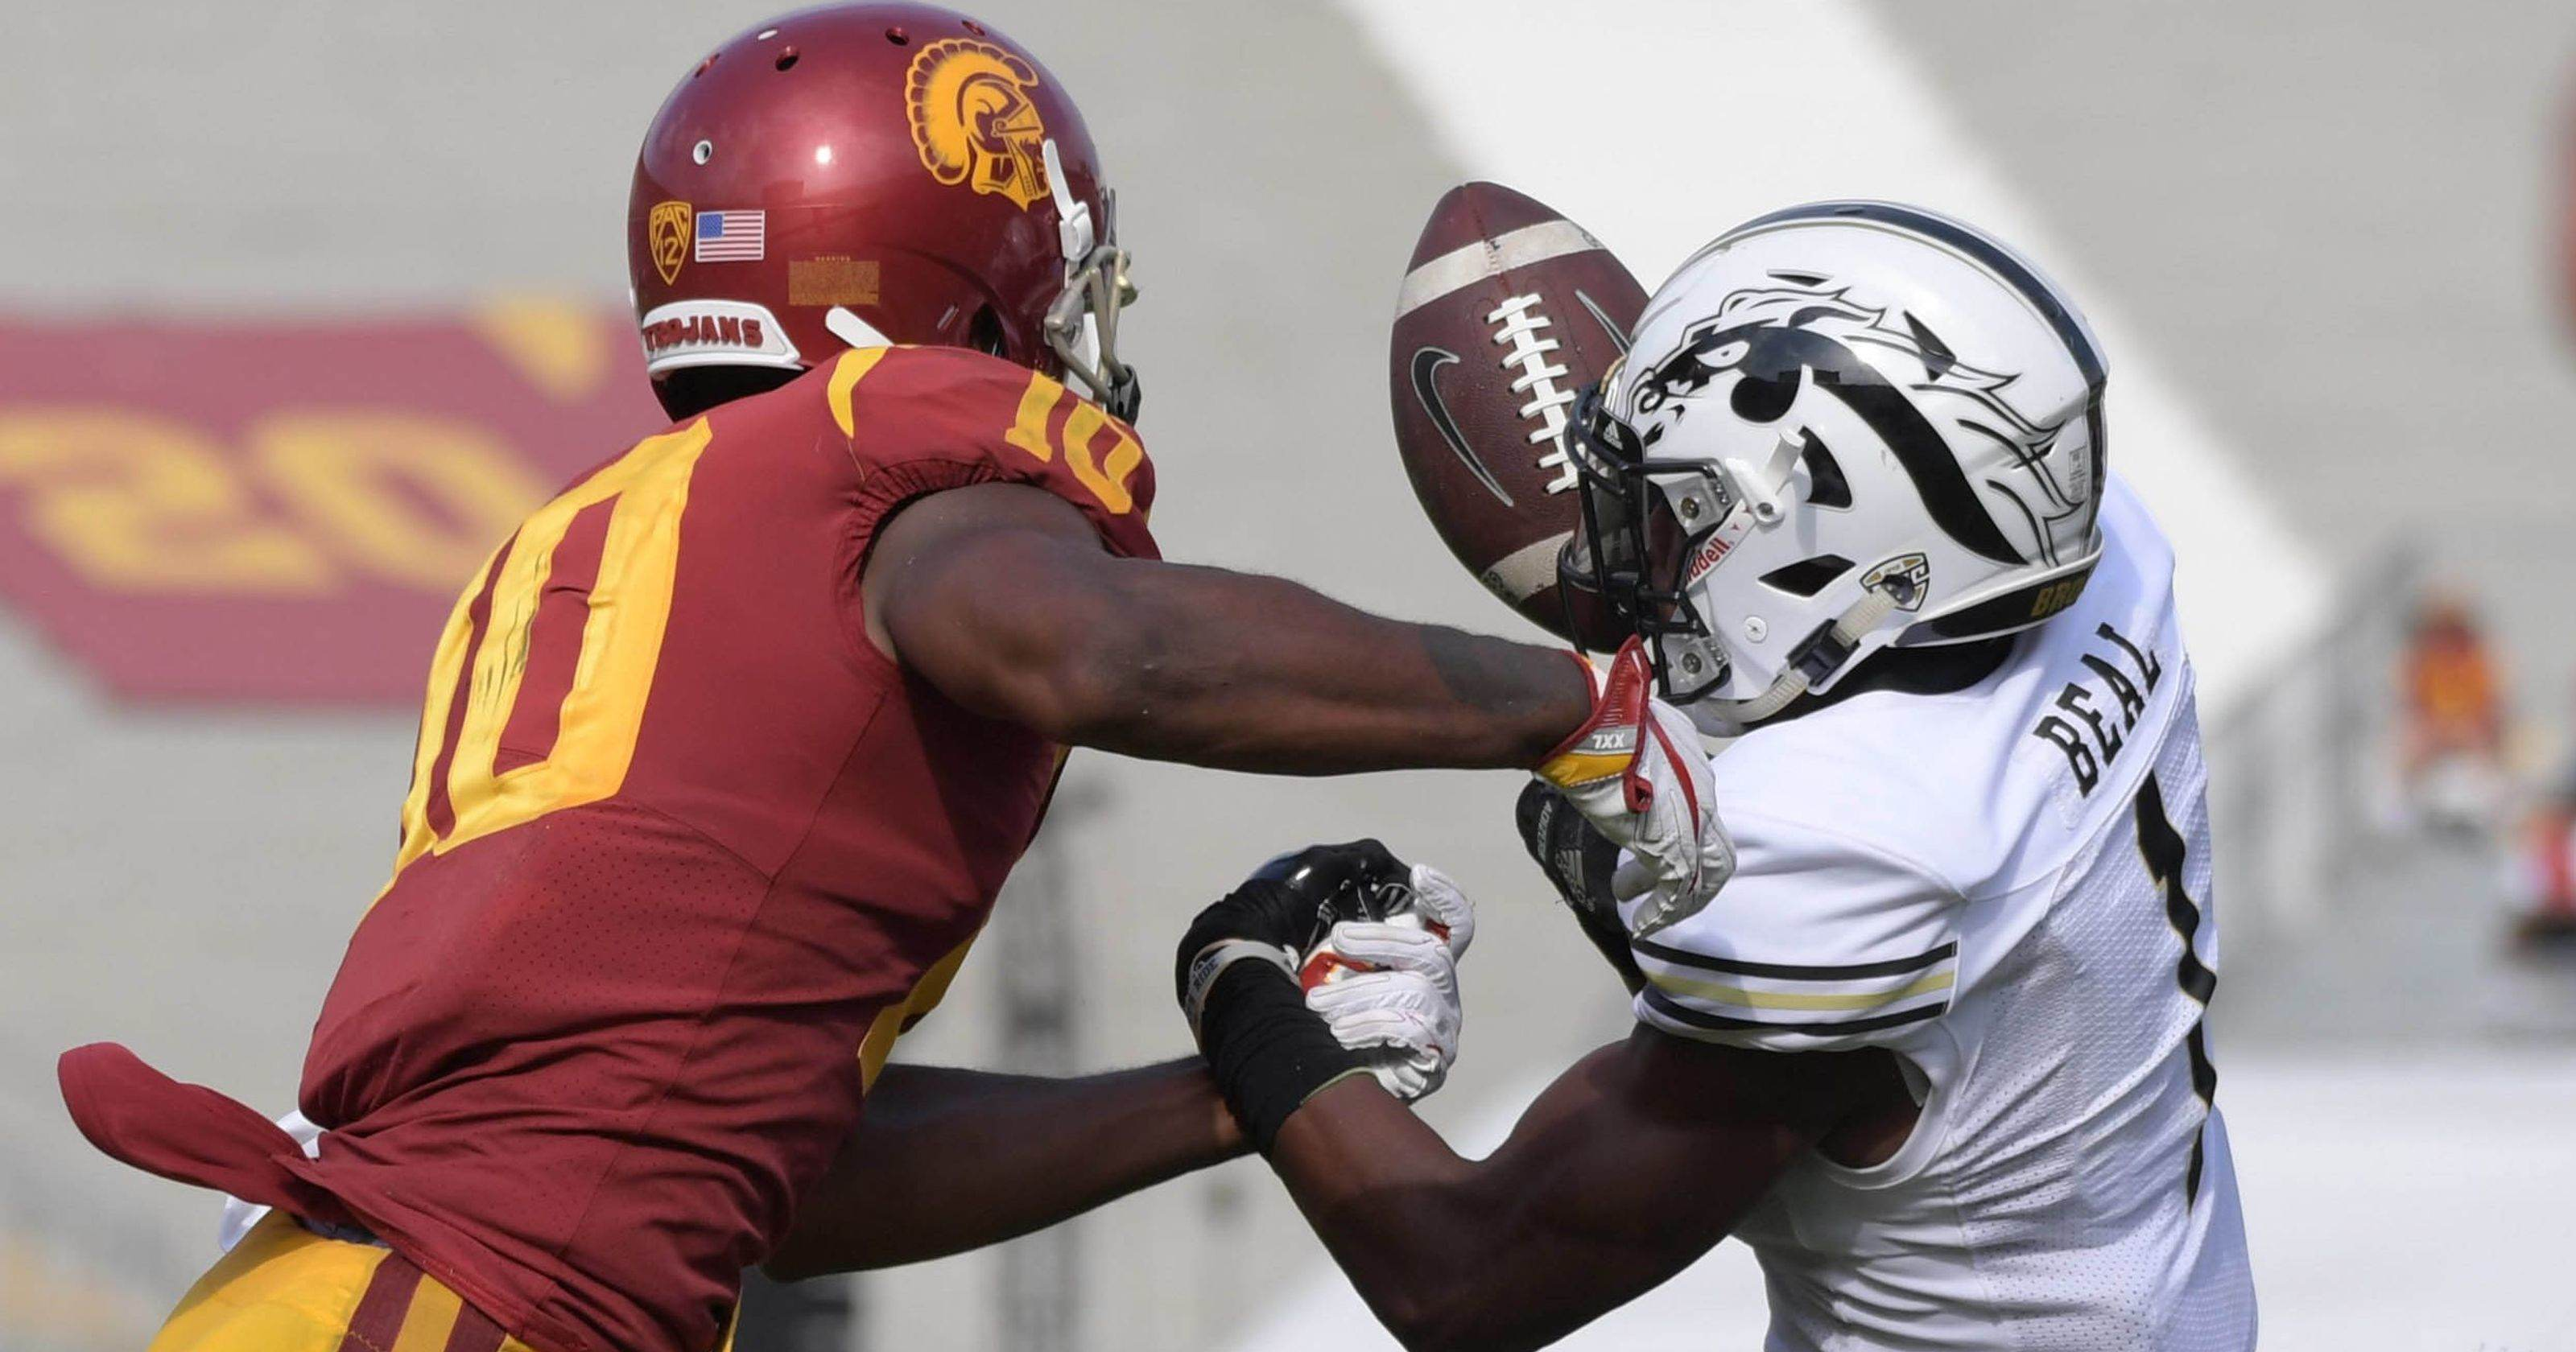 Does Marquez White Assault Charge Alter Cowboys Plan in Supplemental Draft?